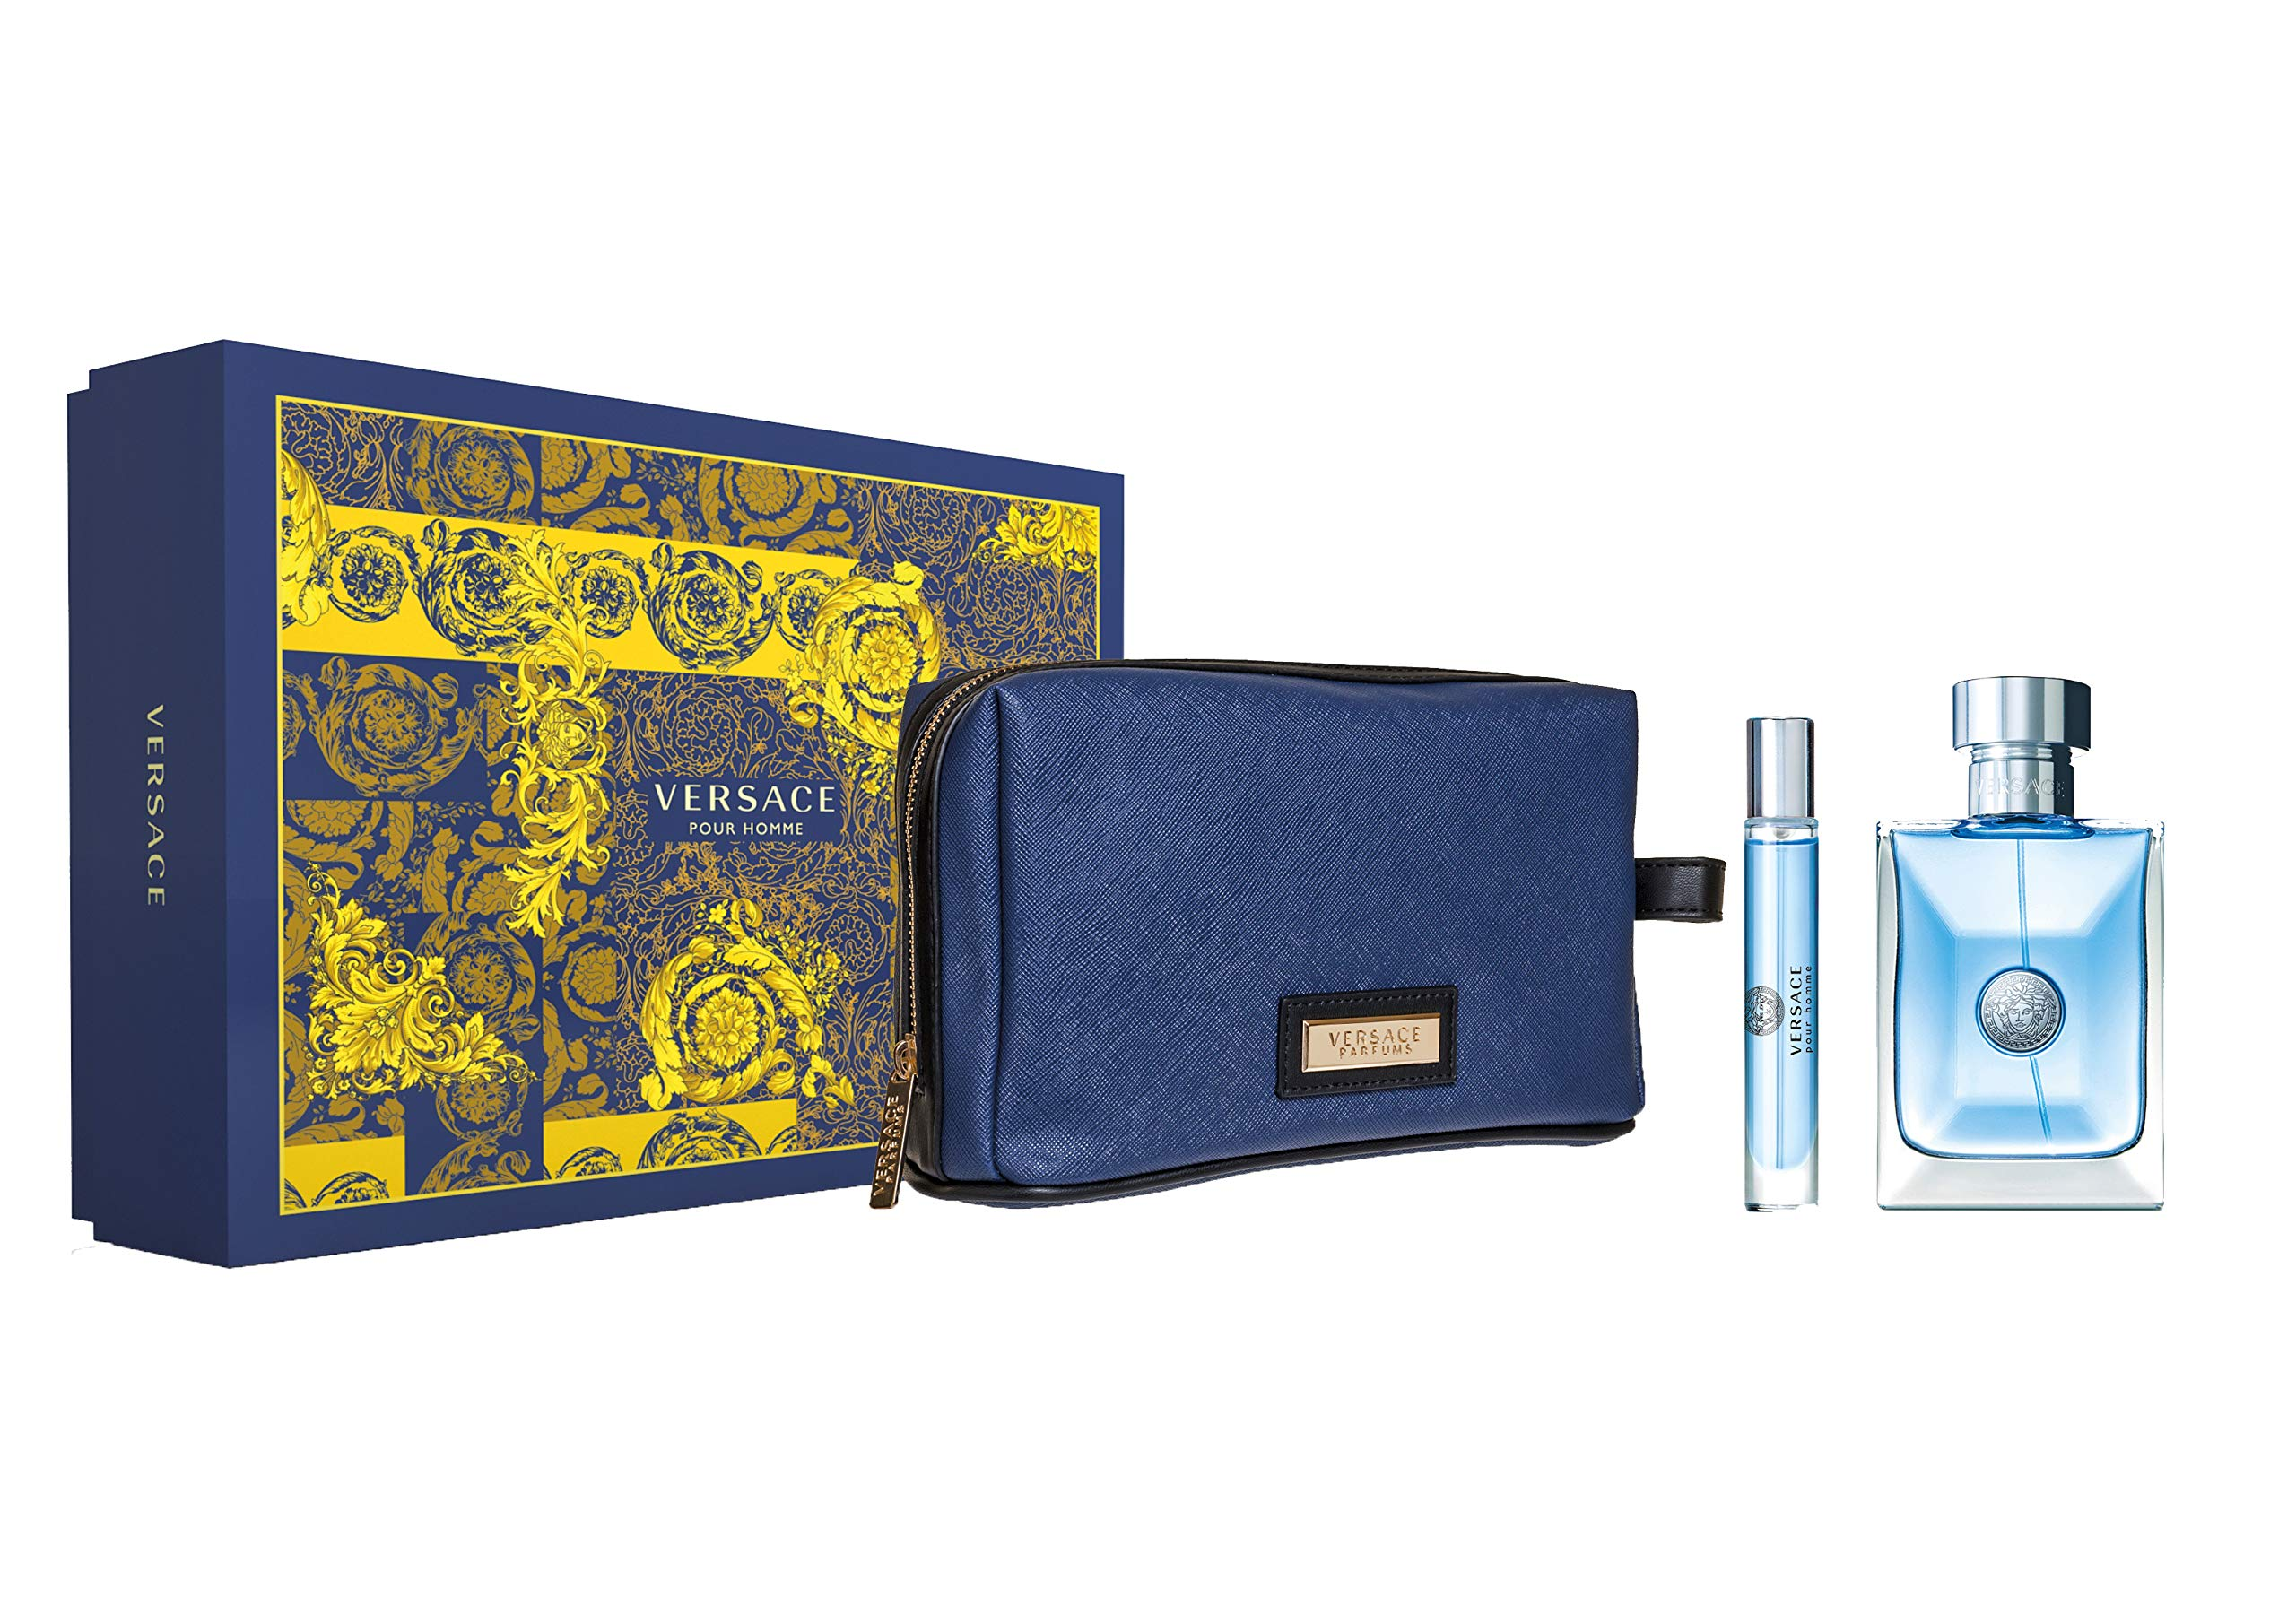 Versace Pour Homme Gift Set, 3 Count by Versace